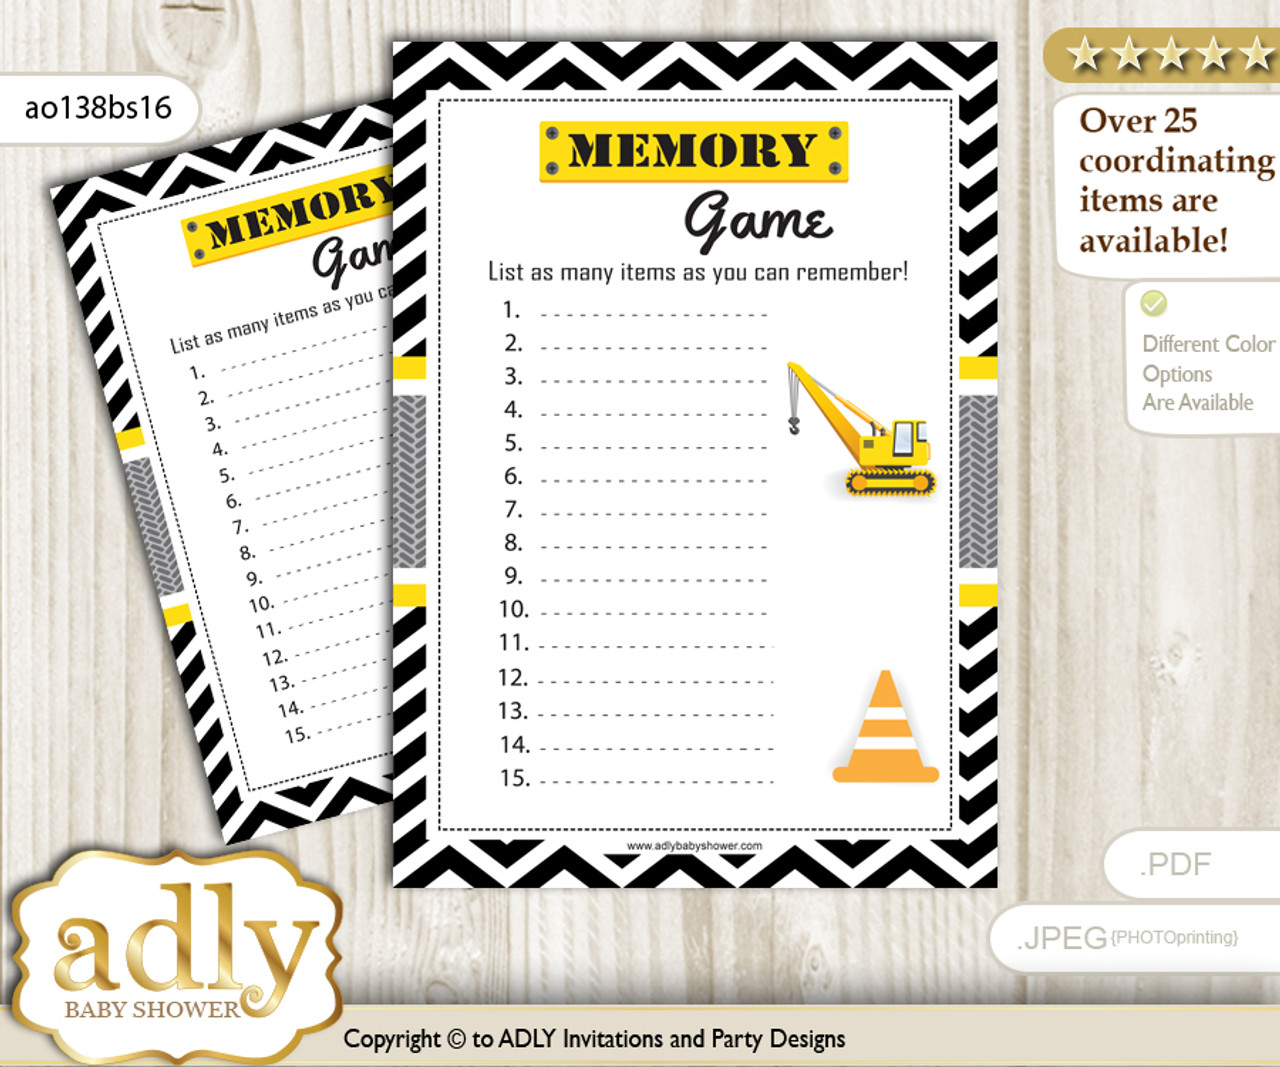 photo relating to Guess Who Cards Printable titled Truck Composition Memory Activity Card for Kid Shower, Printable Bet Card, Yellow Black, Chevron